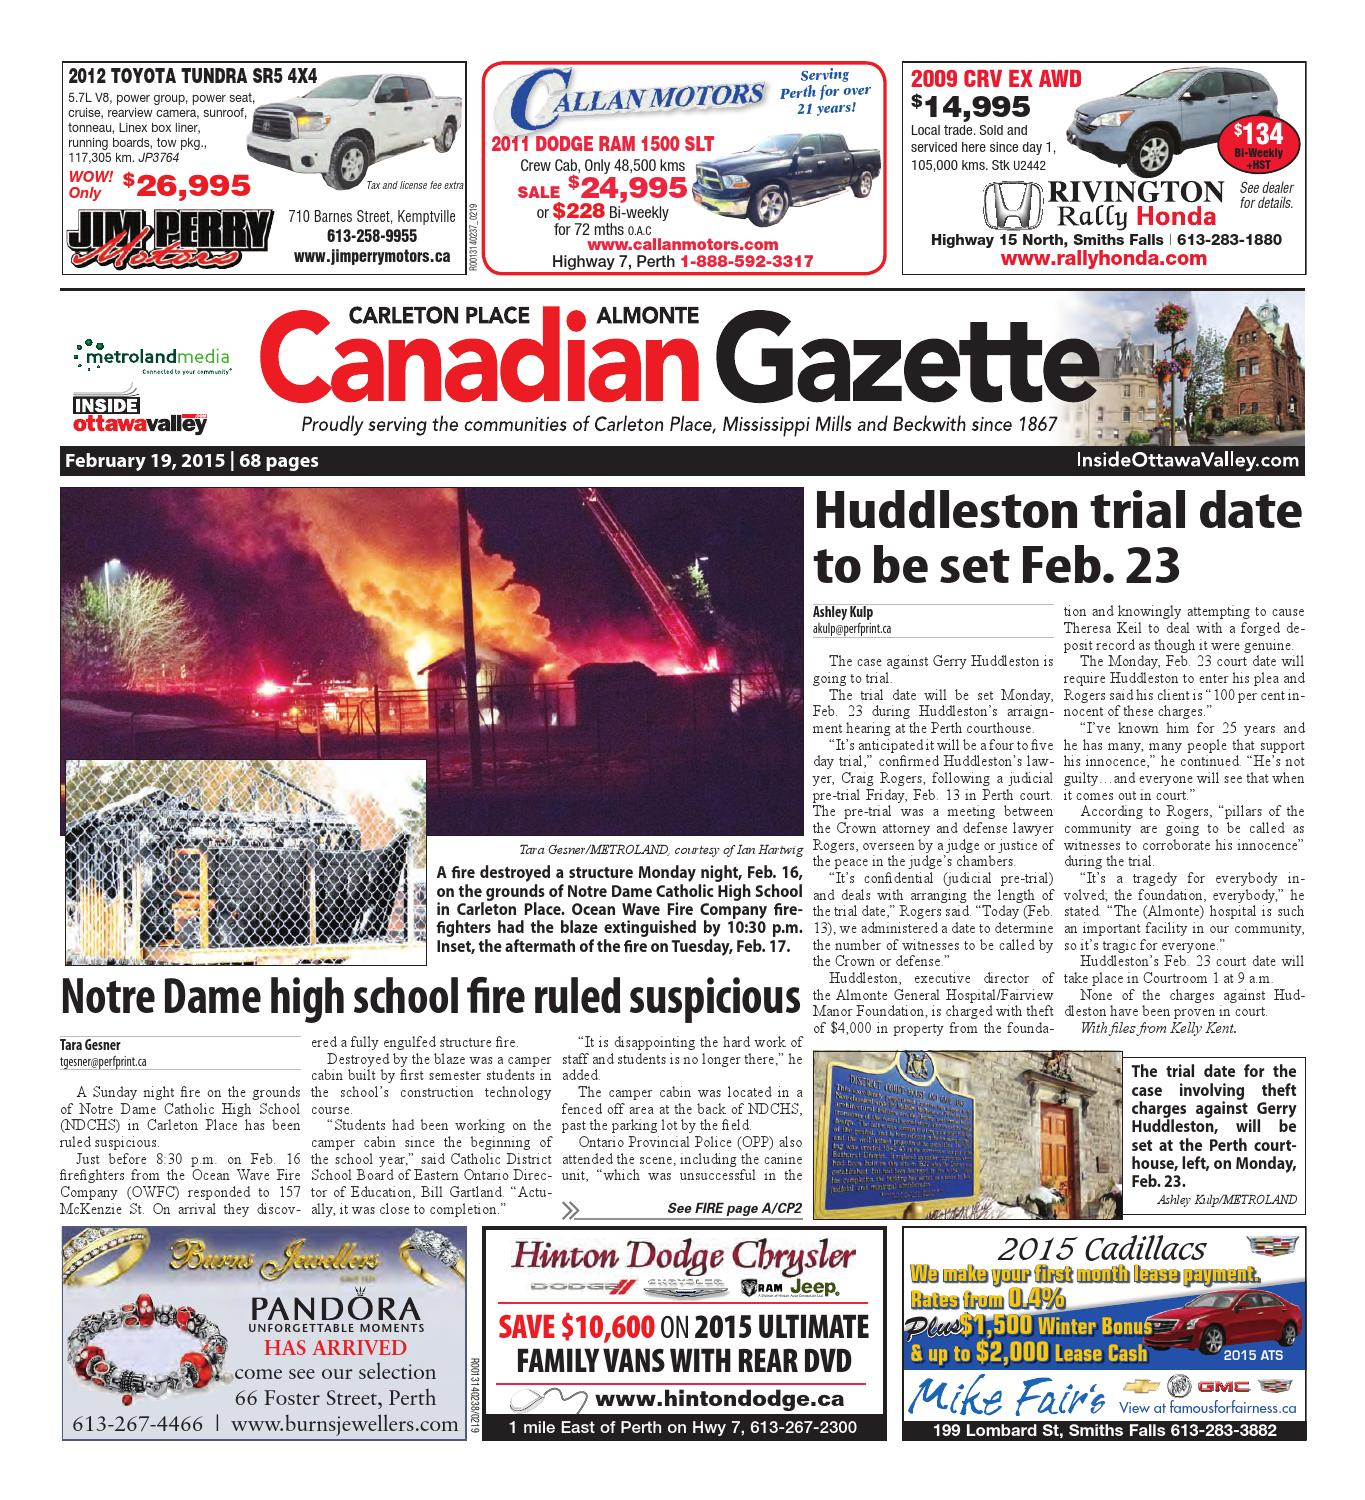 Almontecarletonplace021915 by Metroland East - Almonte Carleton Place  Canadian Gazette - issuu 5691056cf